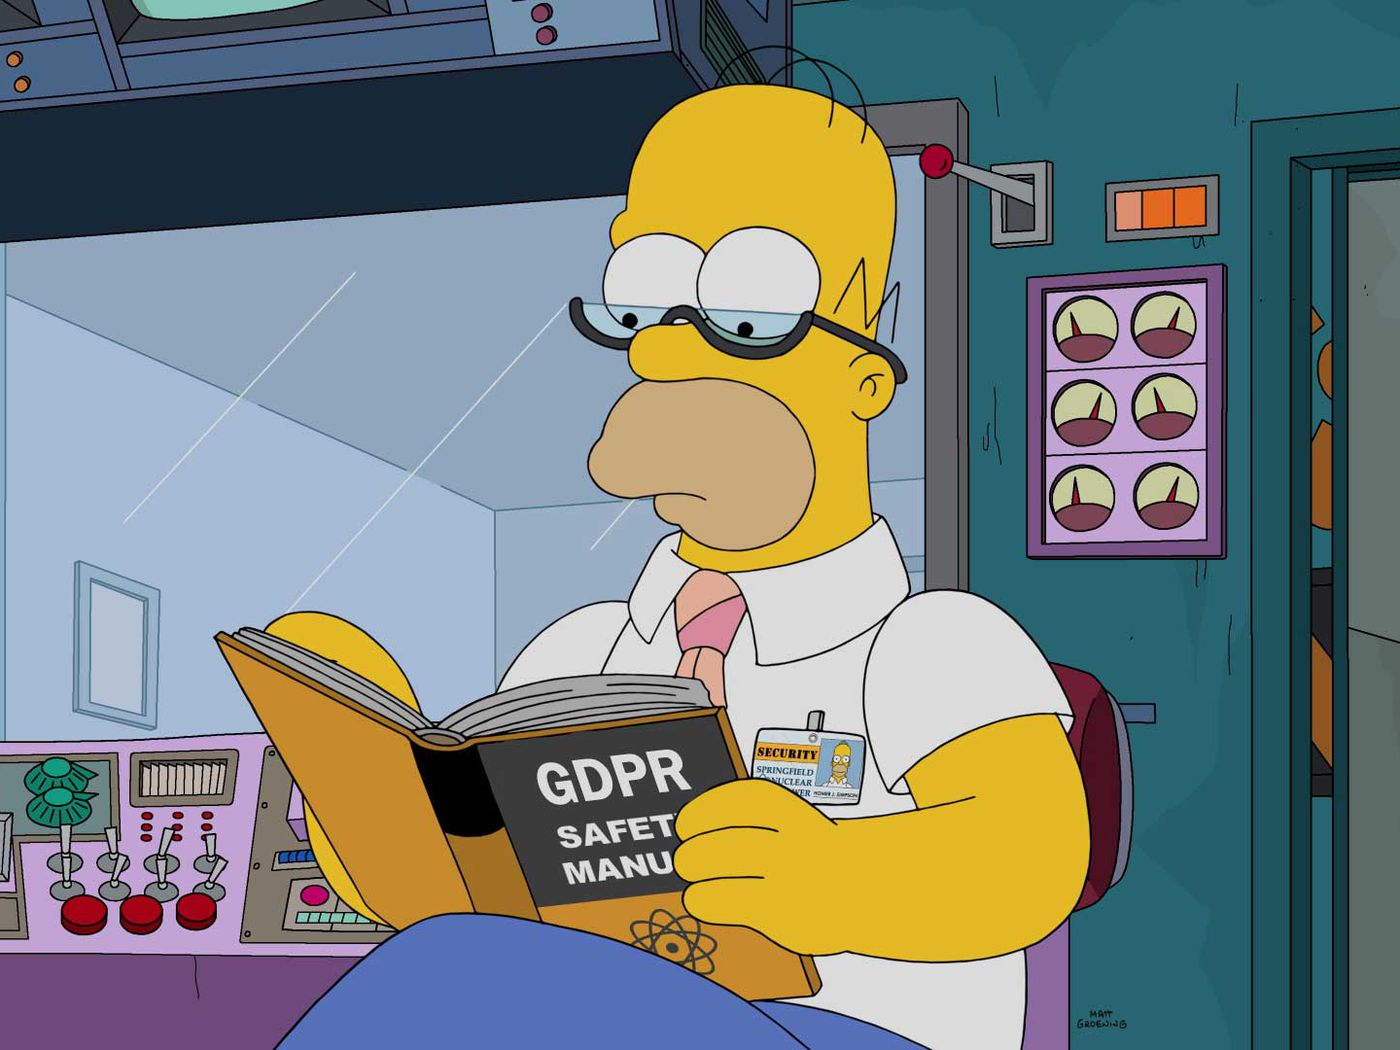 GDPR: A practical guide for American businesses - Vox